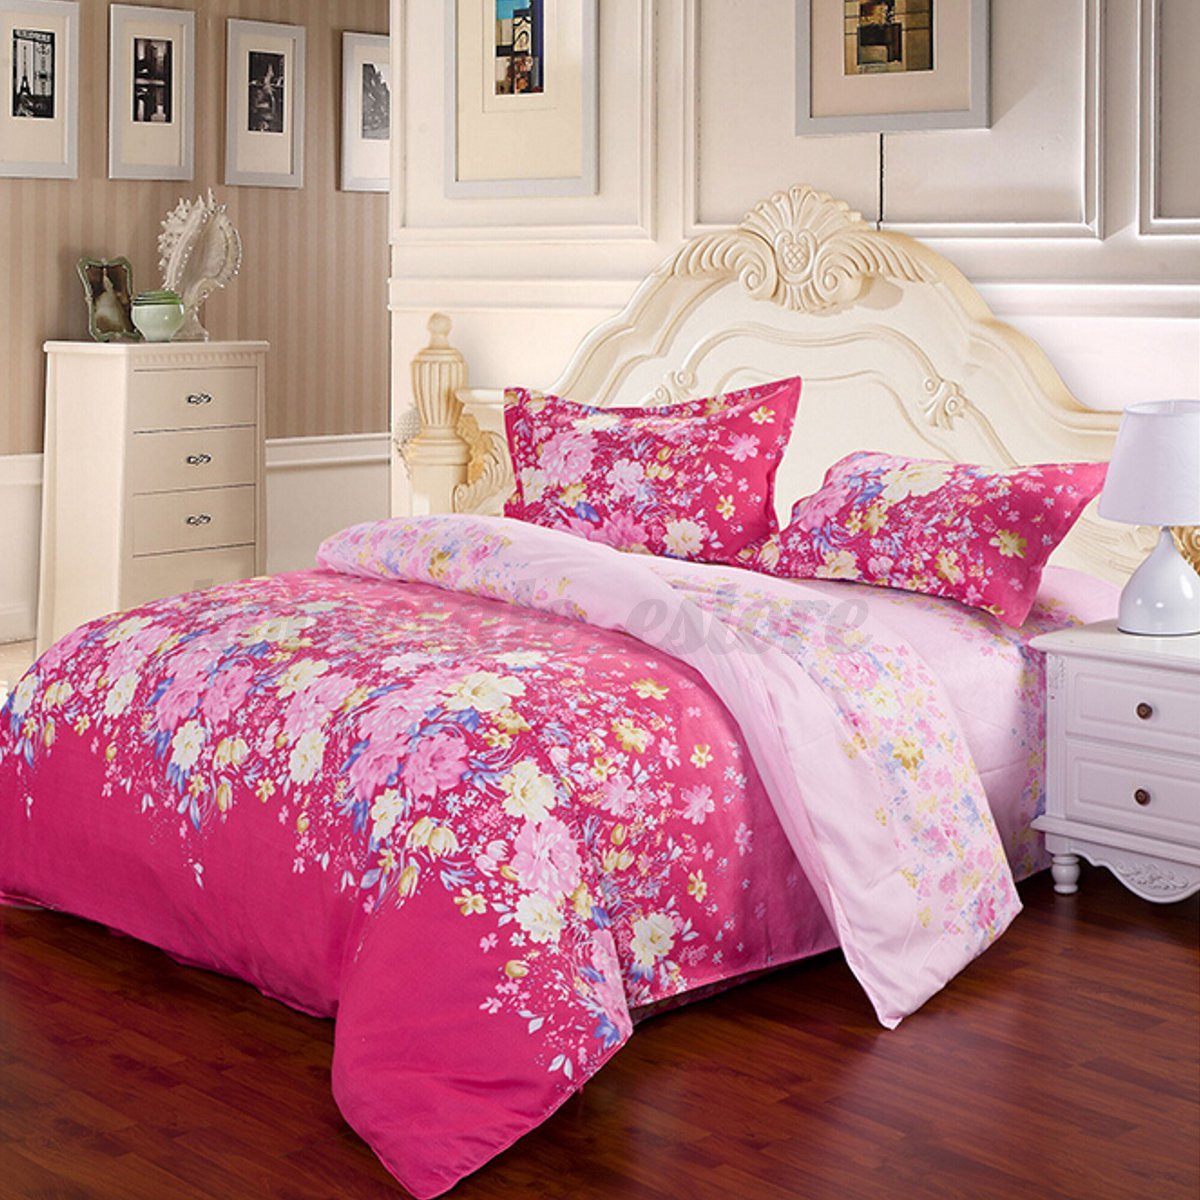 Make the most of your bedroom with our bedding sets and duvet cover sets. Choose from a range of traditional and modern styles and colours. Need help with the right size duvet cover? King size duvet covers.